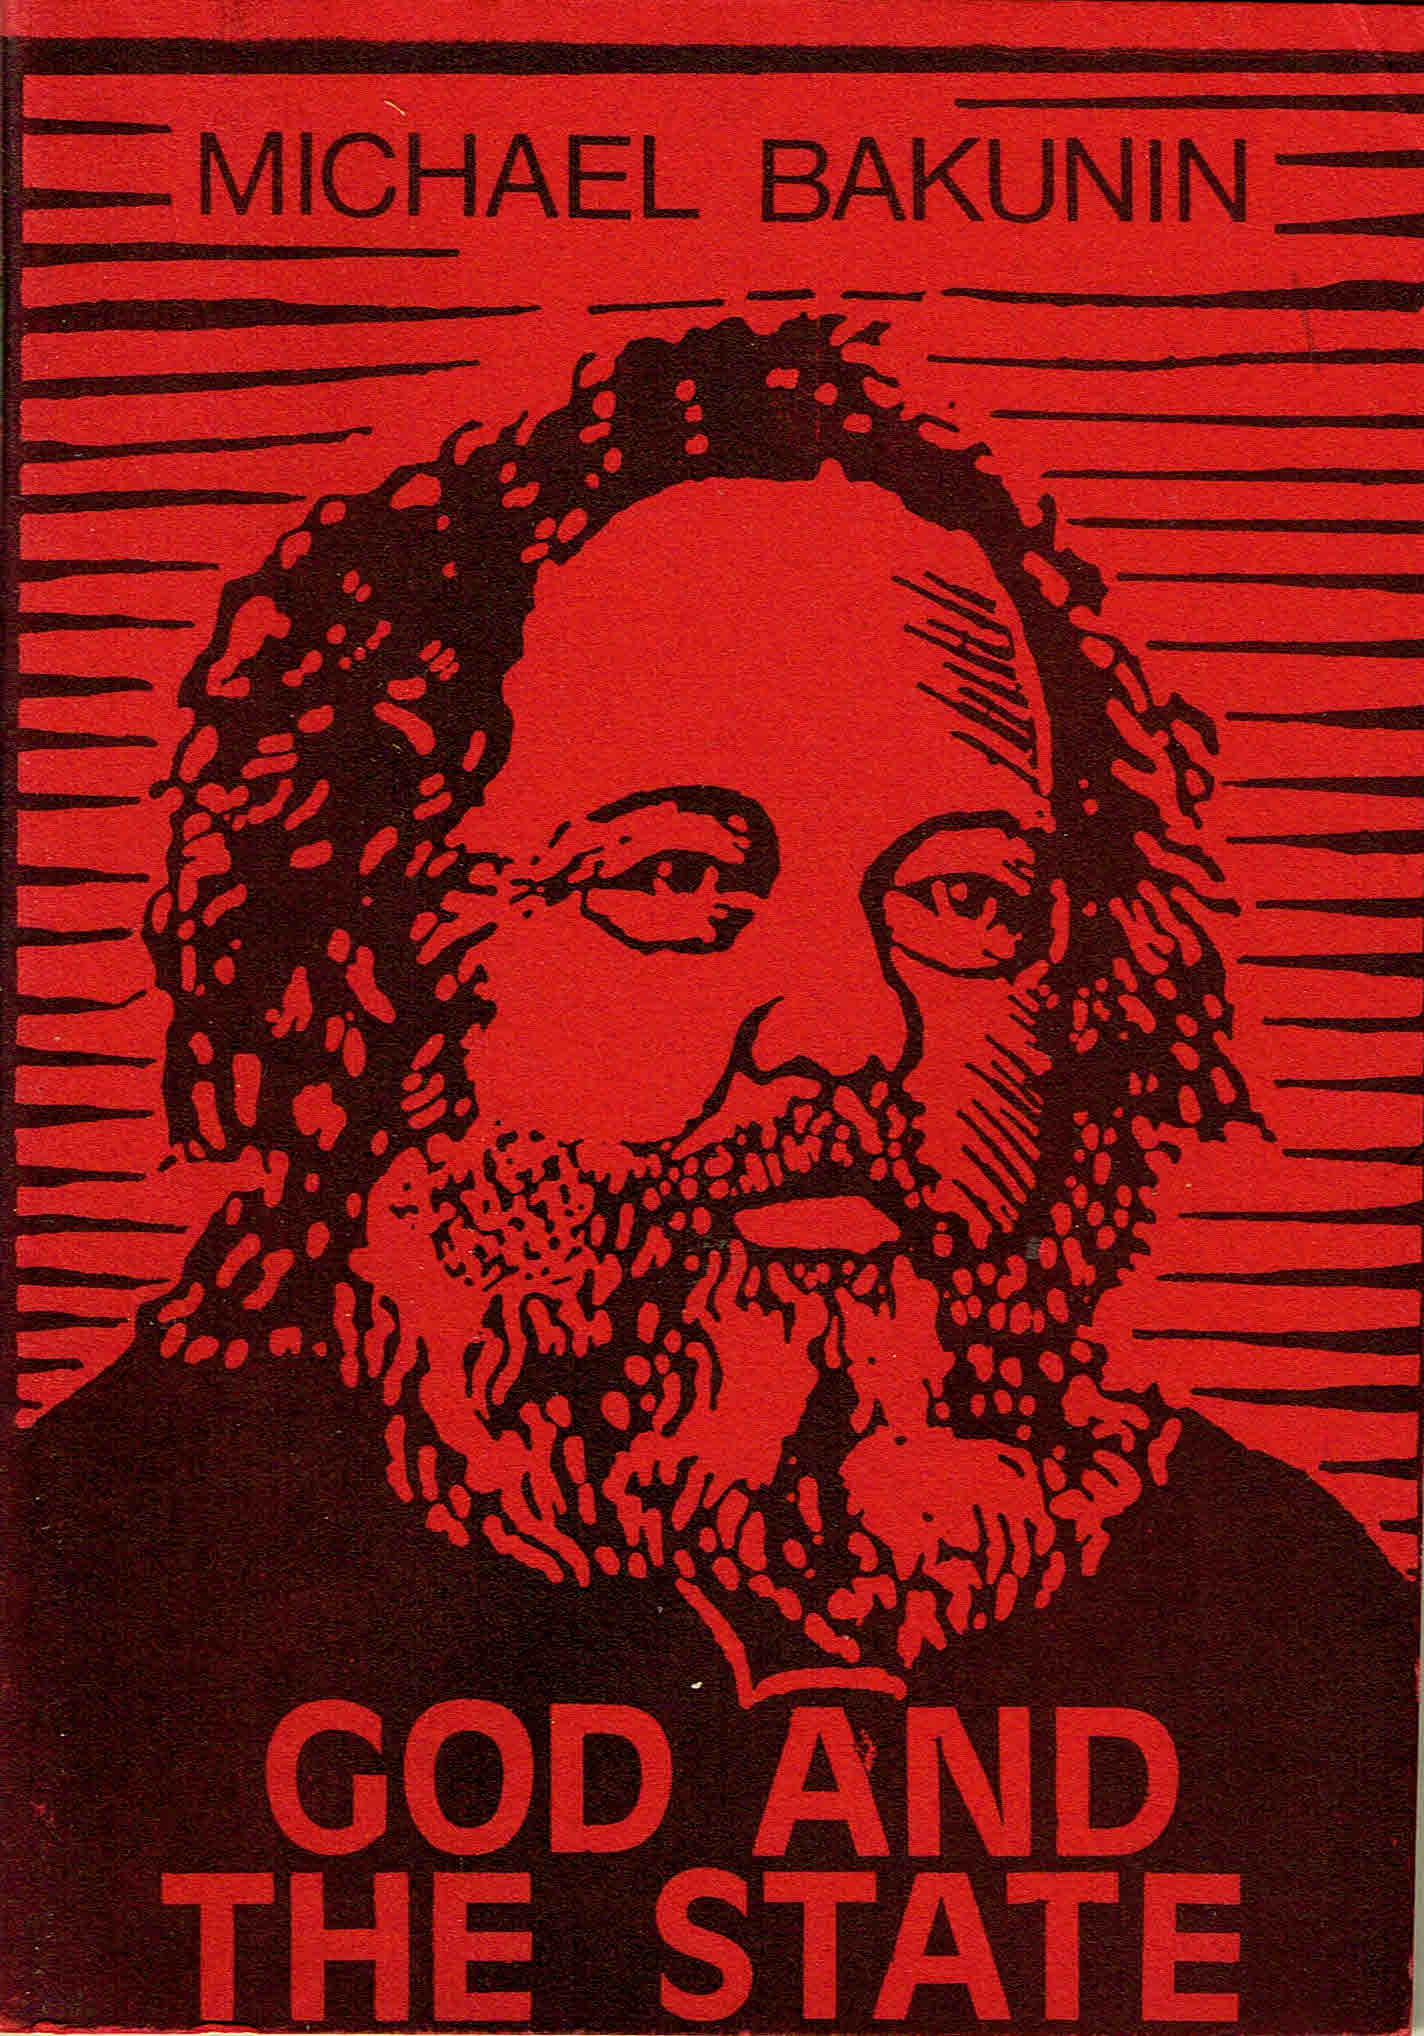 michael-bakunin-god-and-the-state.jpg